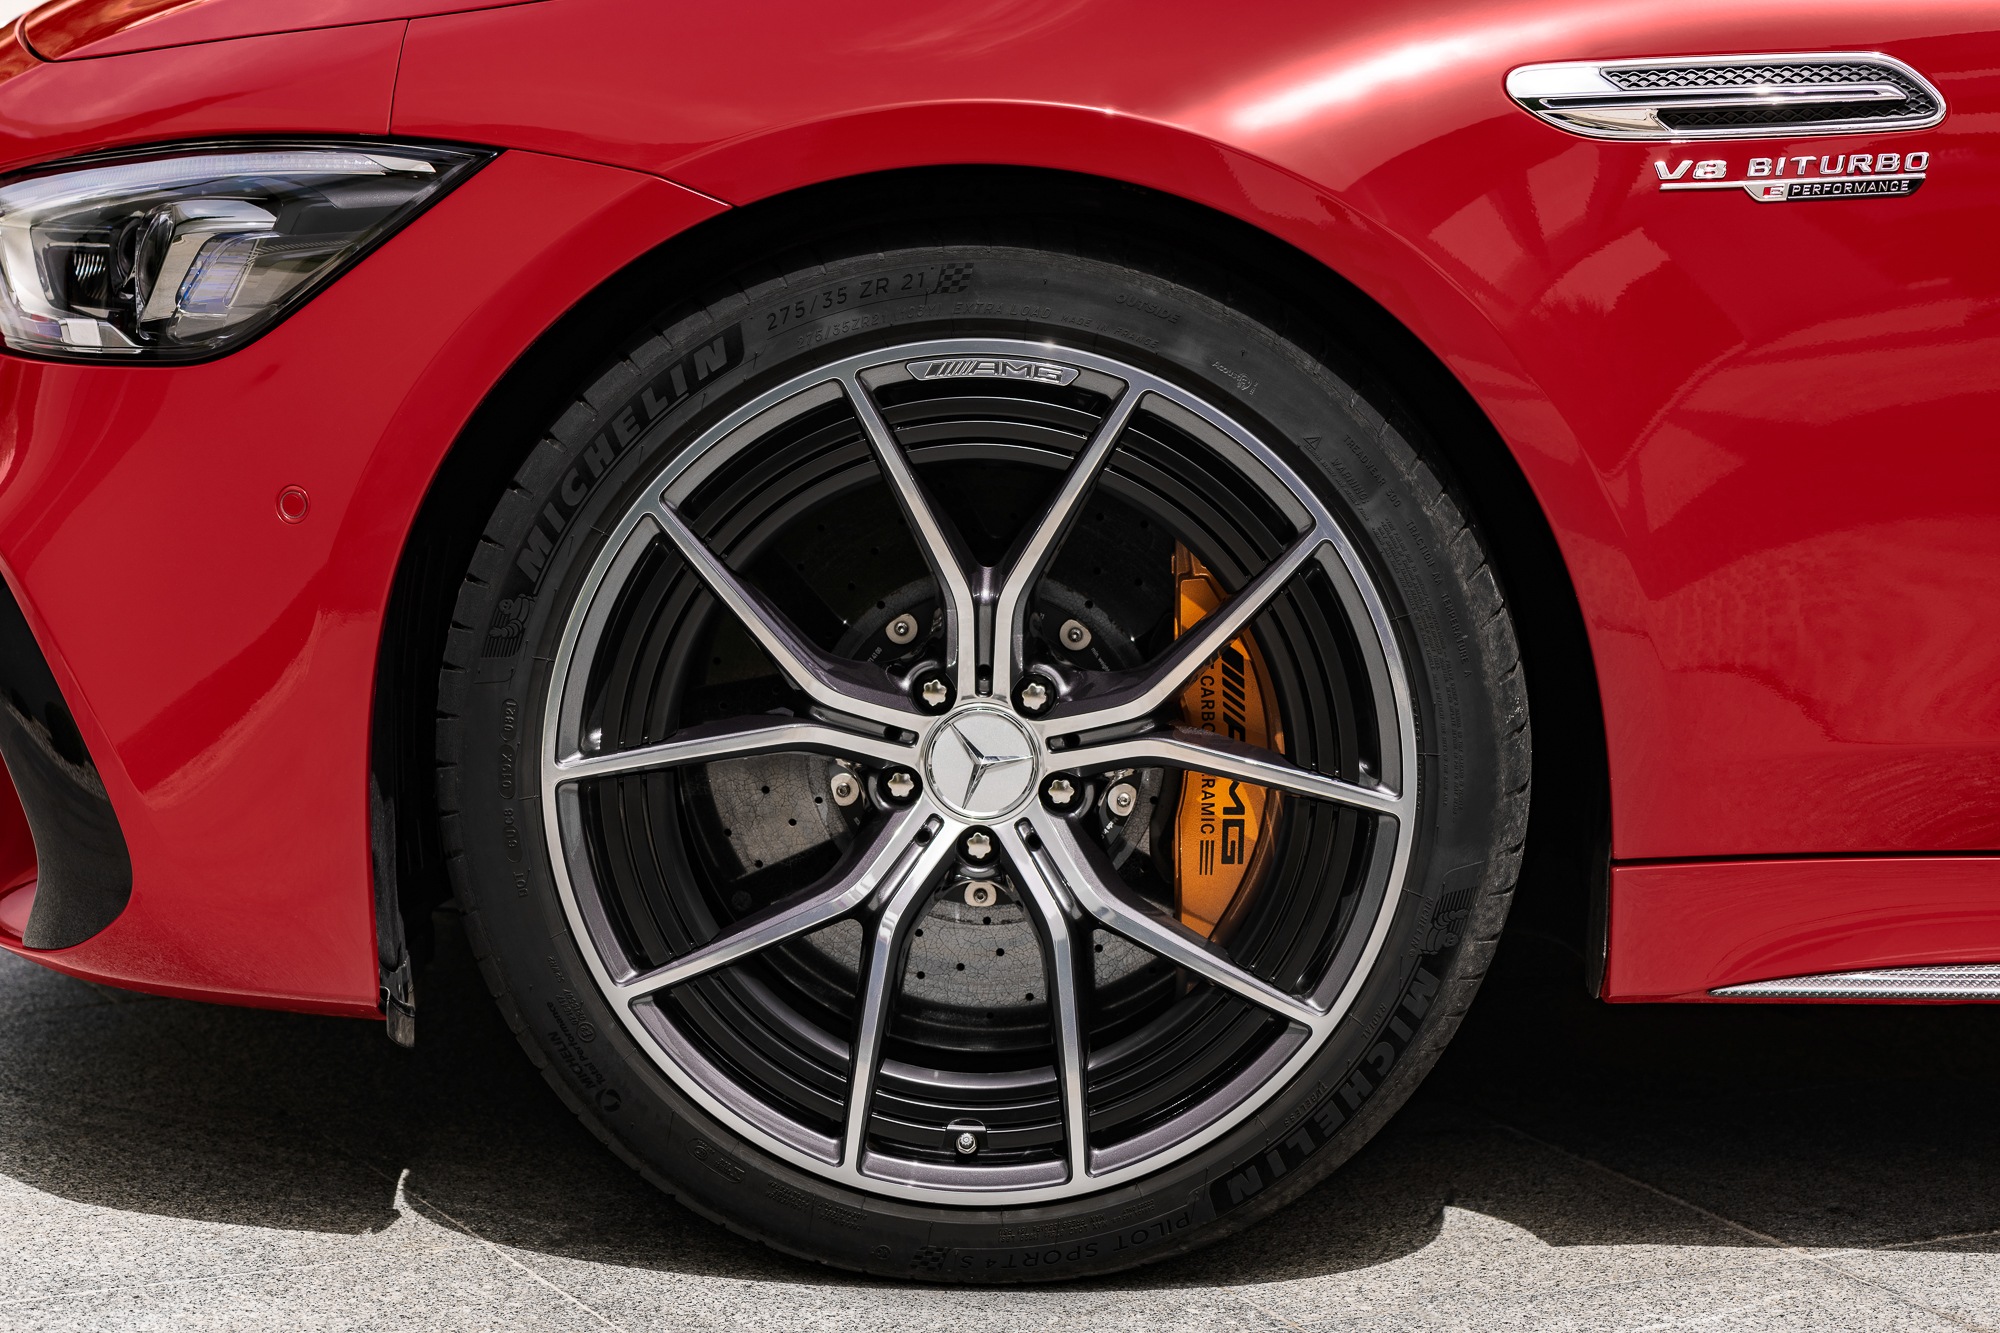 2023-Mercedes-AMG-GT-63-S-E-Performance front wheel tire brakes